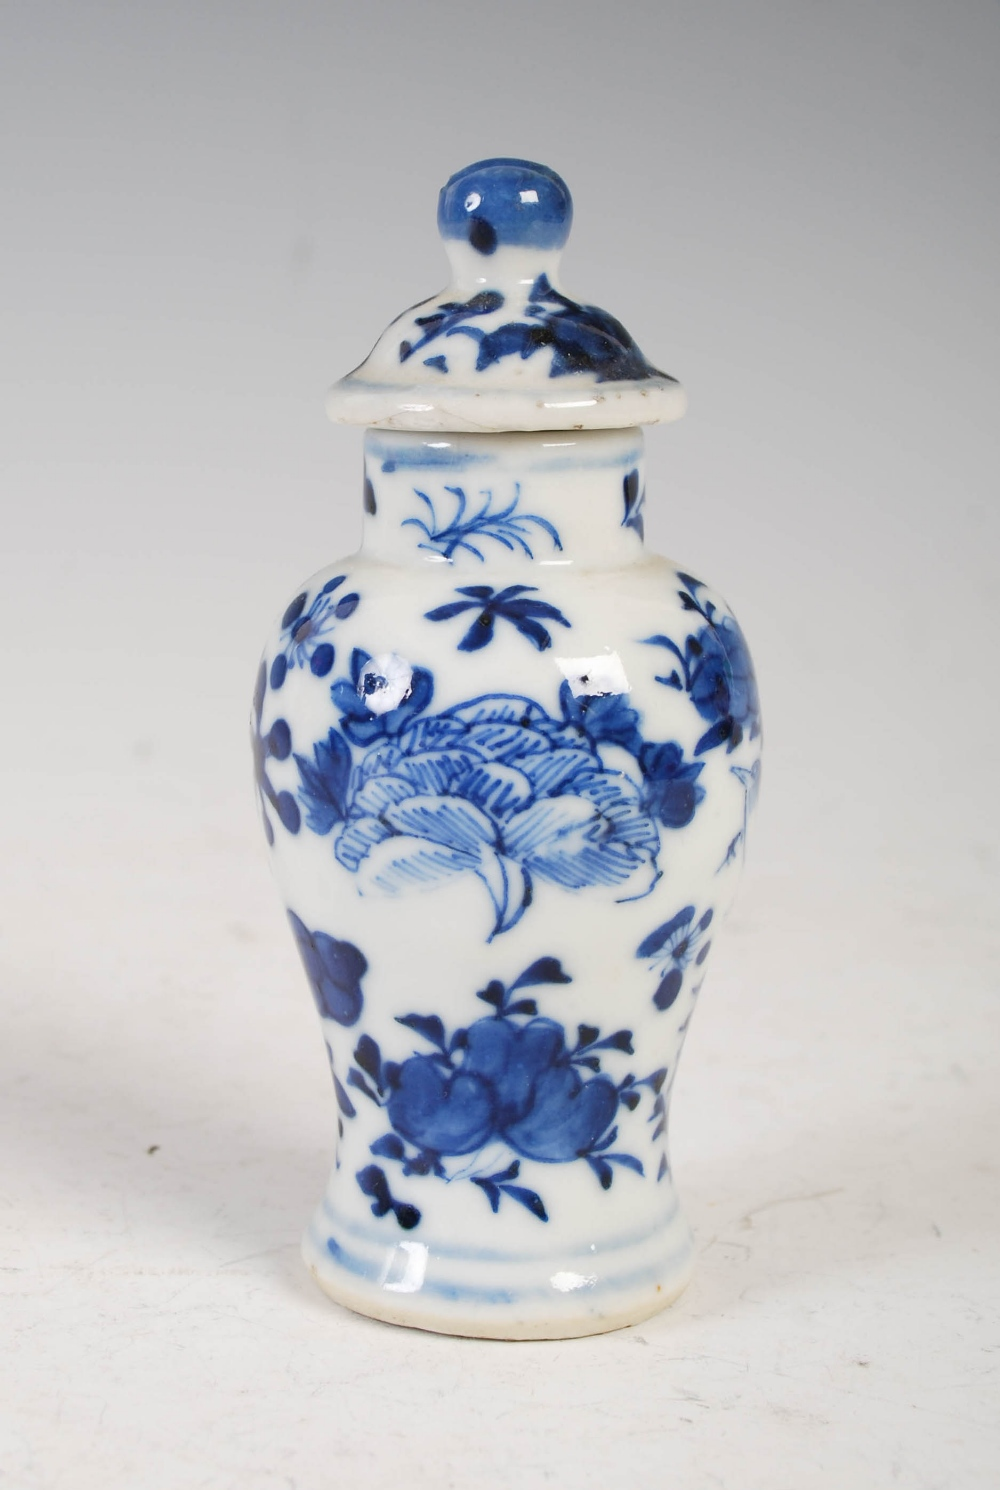 A miniature Chinese blue and white porcelain jar and cover, late Qing Dynasty, decorated with